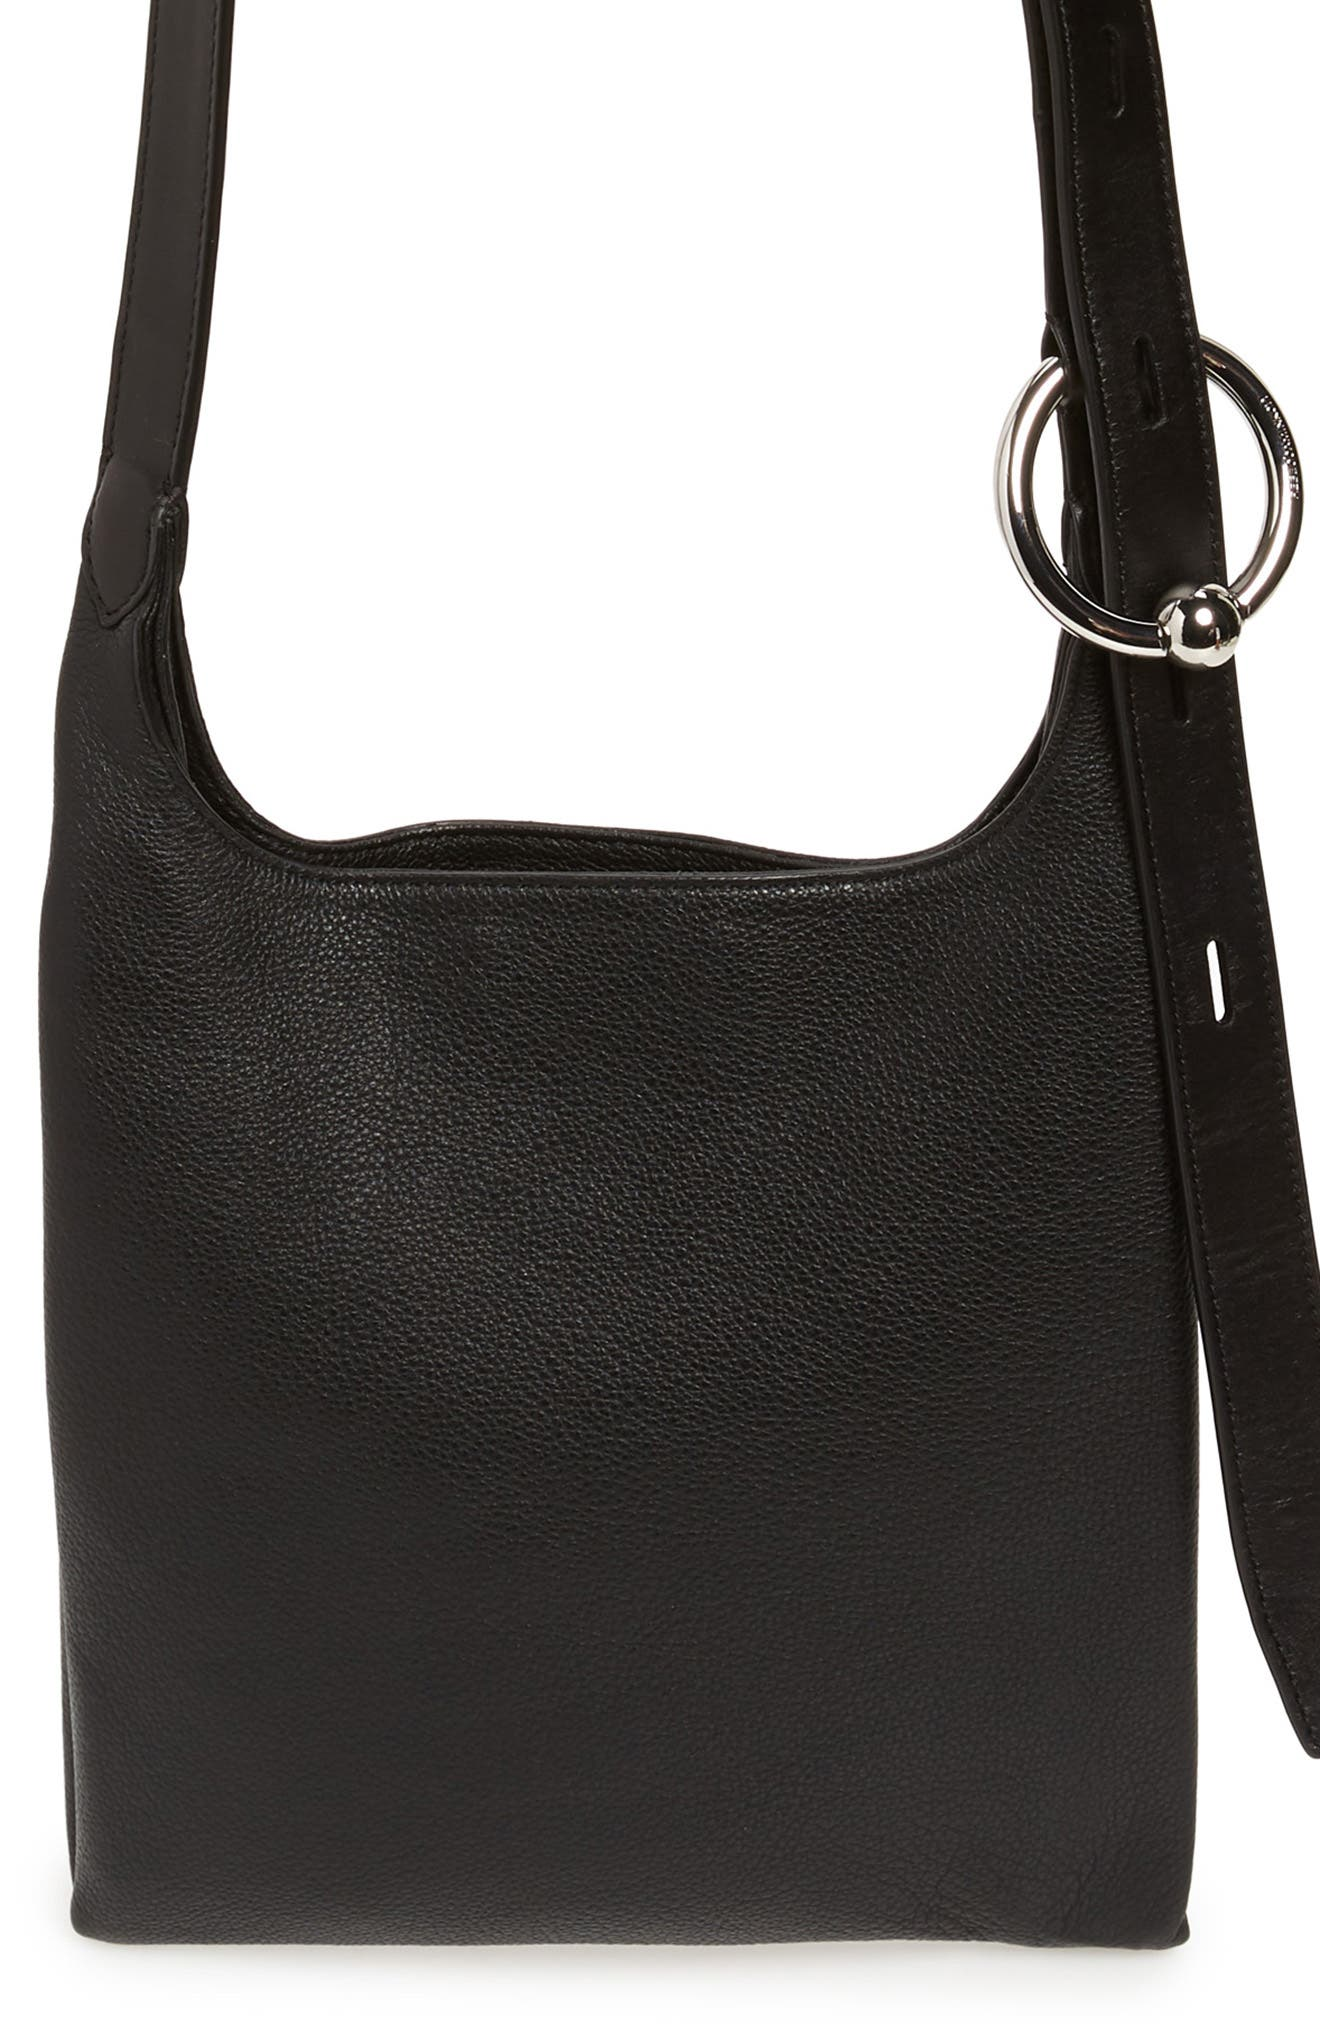 Small Karlie Leather Feed Bag - Black